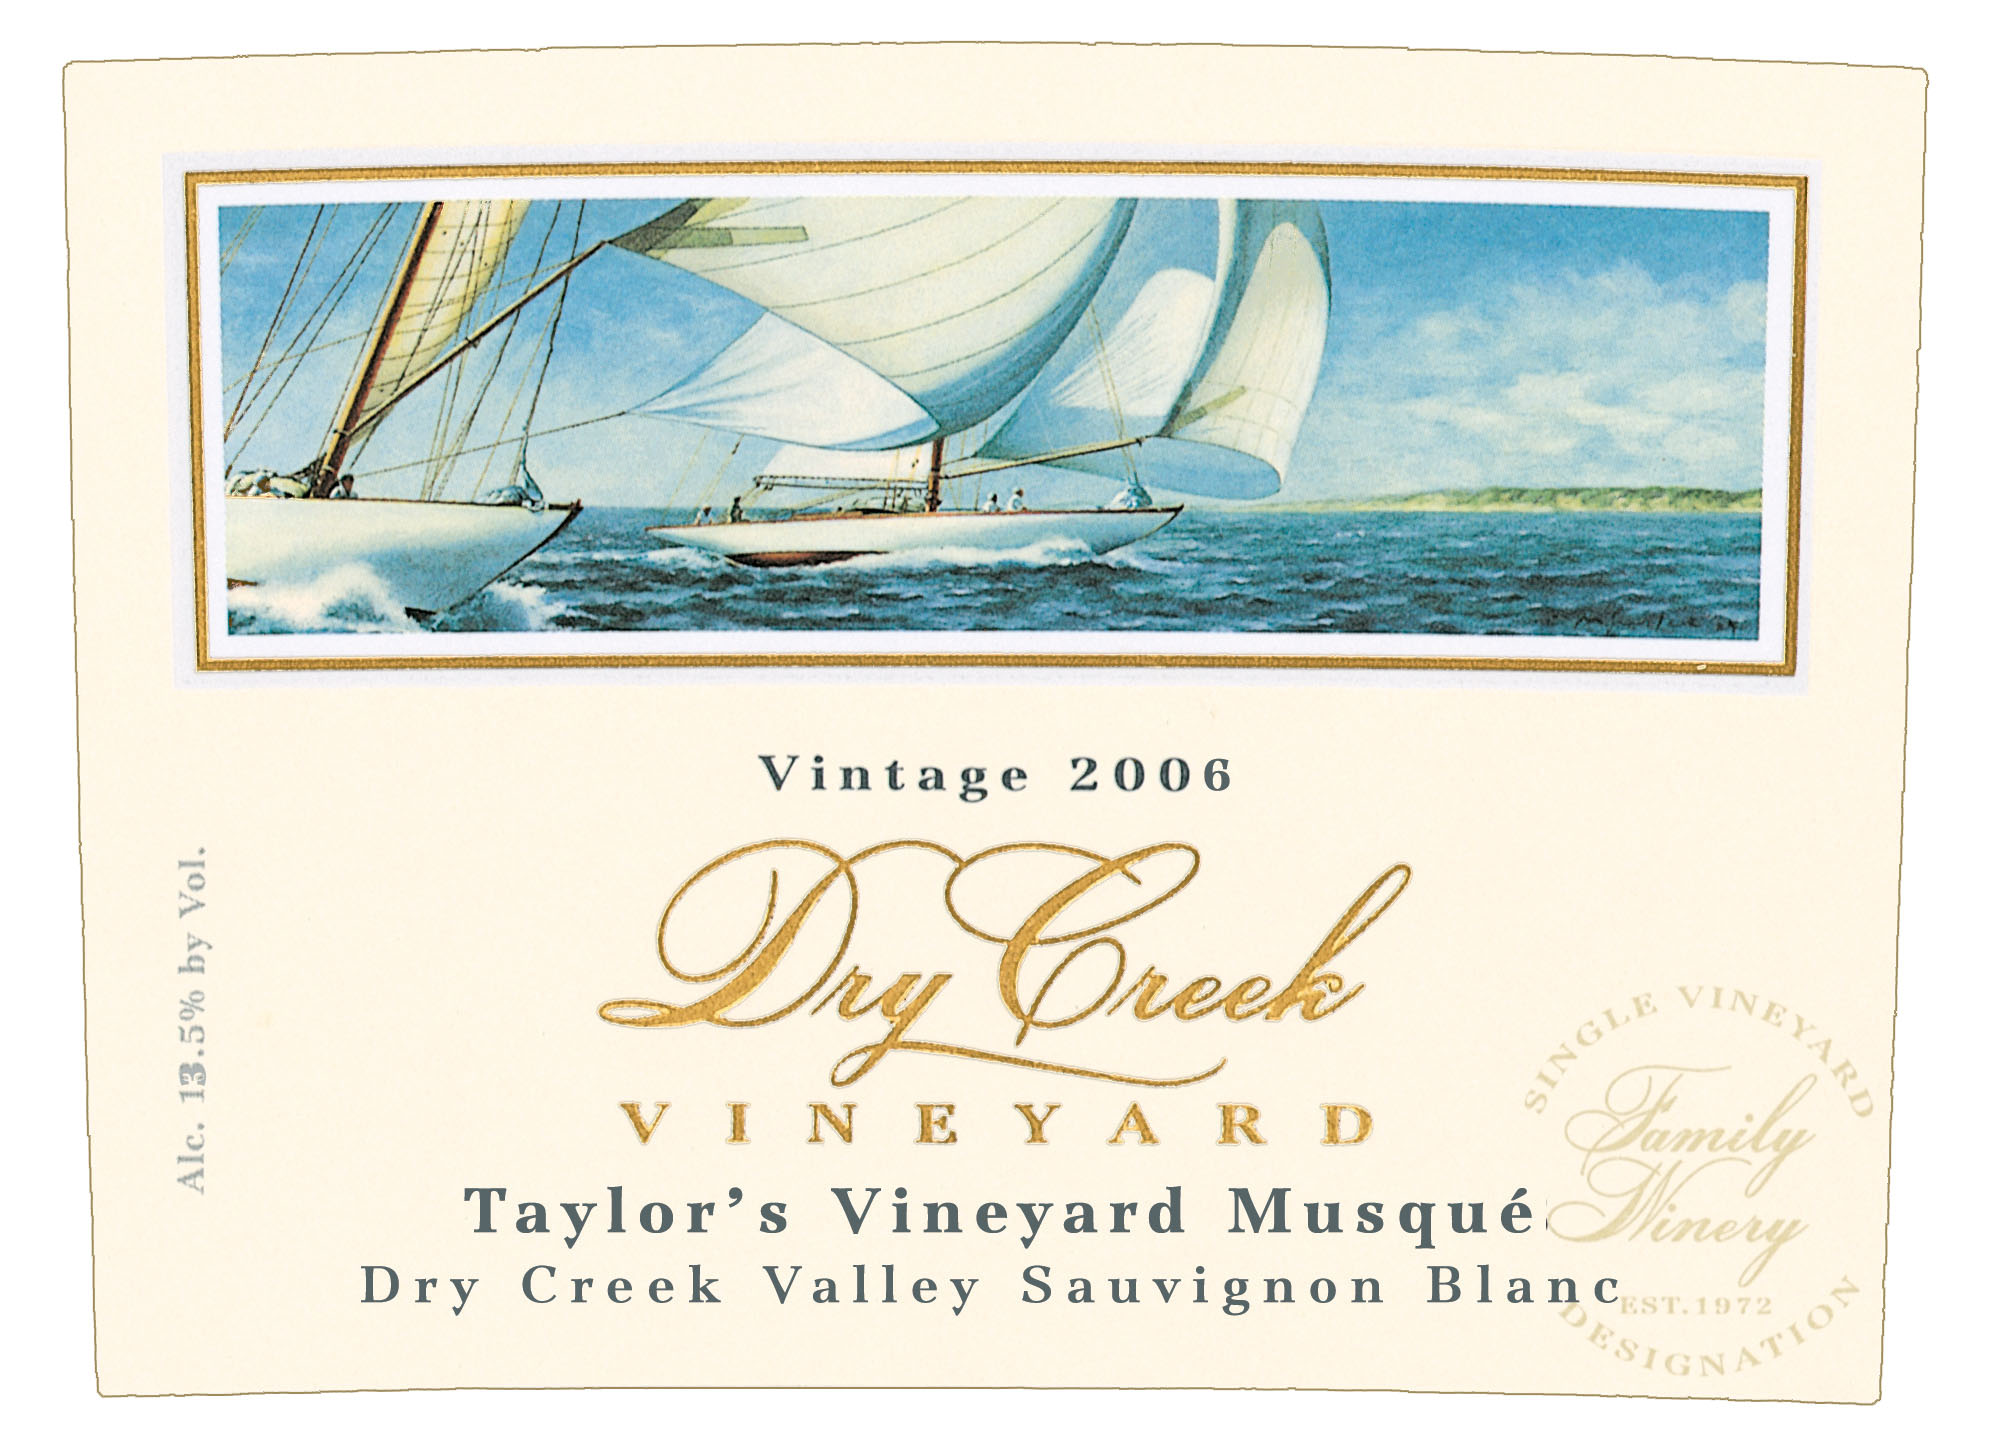 There Are Several Varietals That Come To Mind When I Think Of Dry Creek Vineyard One Those Is Sauvignon Blanc They Make Three Different Offerings